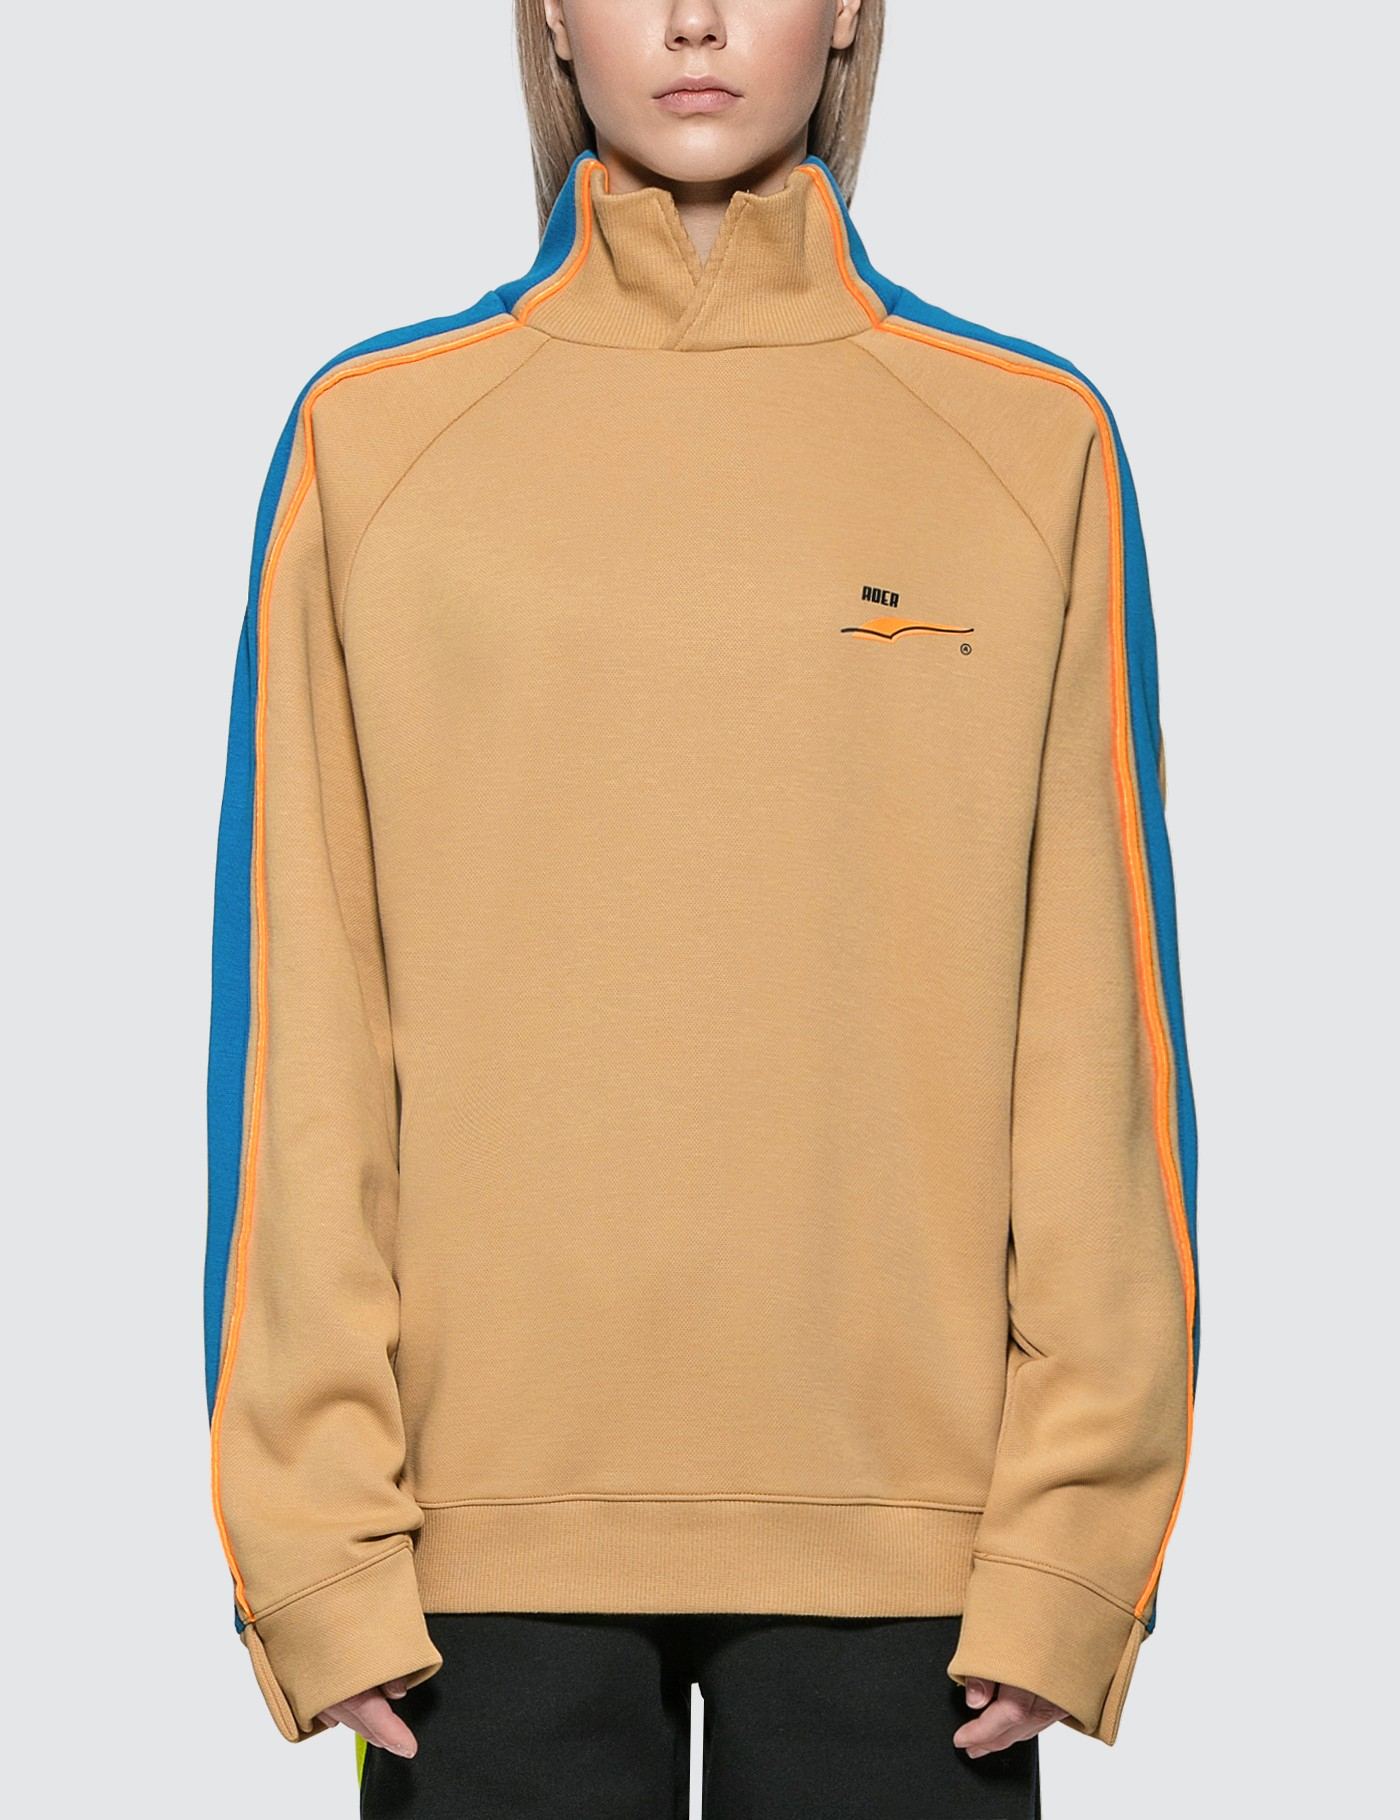 Ader Error X Puma Turtleneck Top